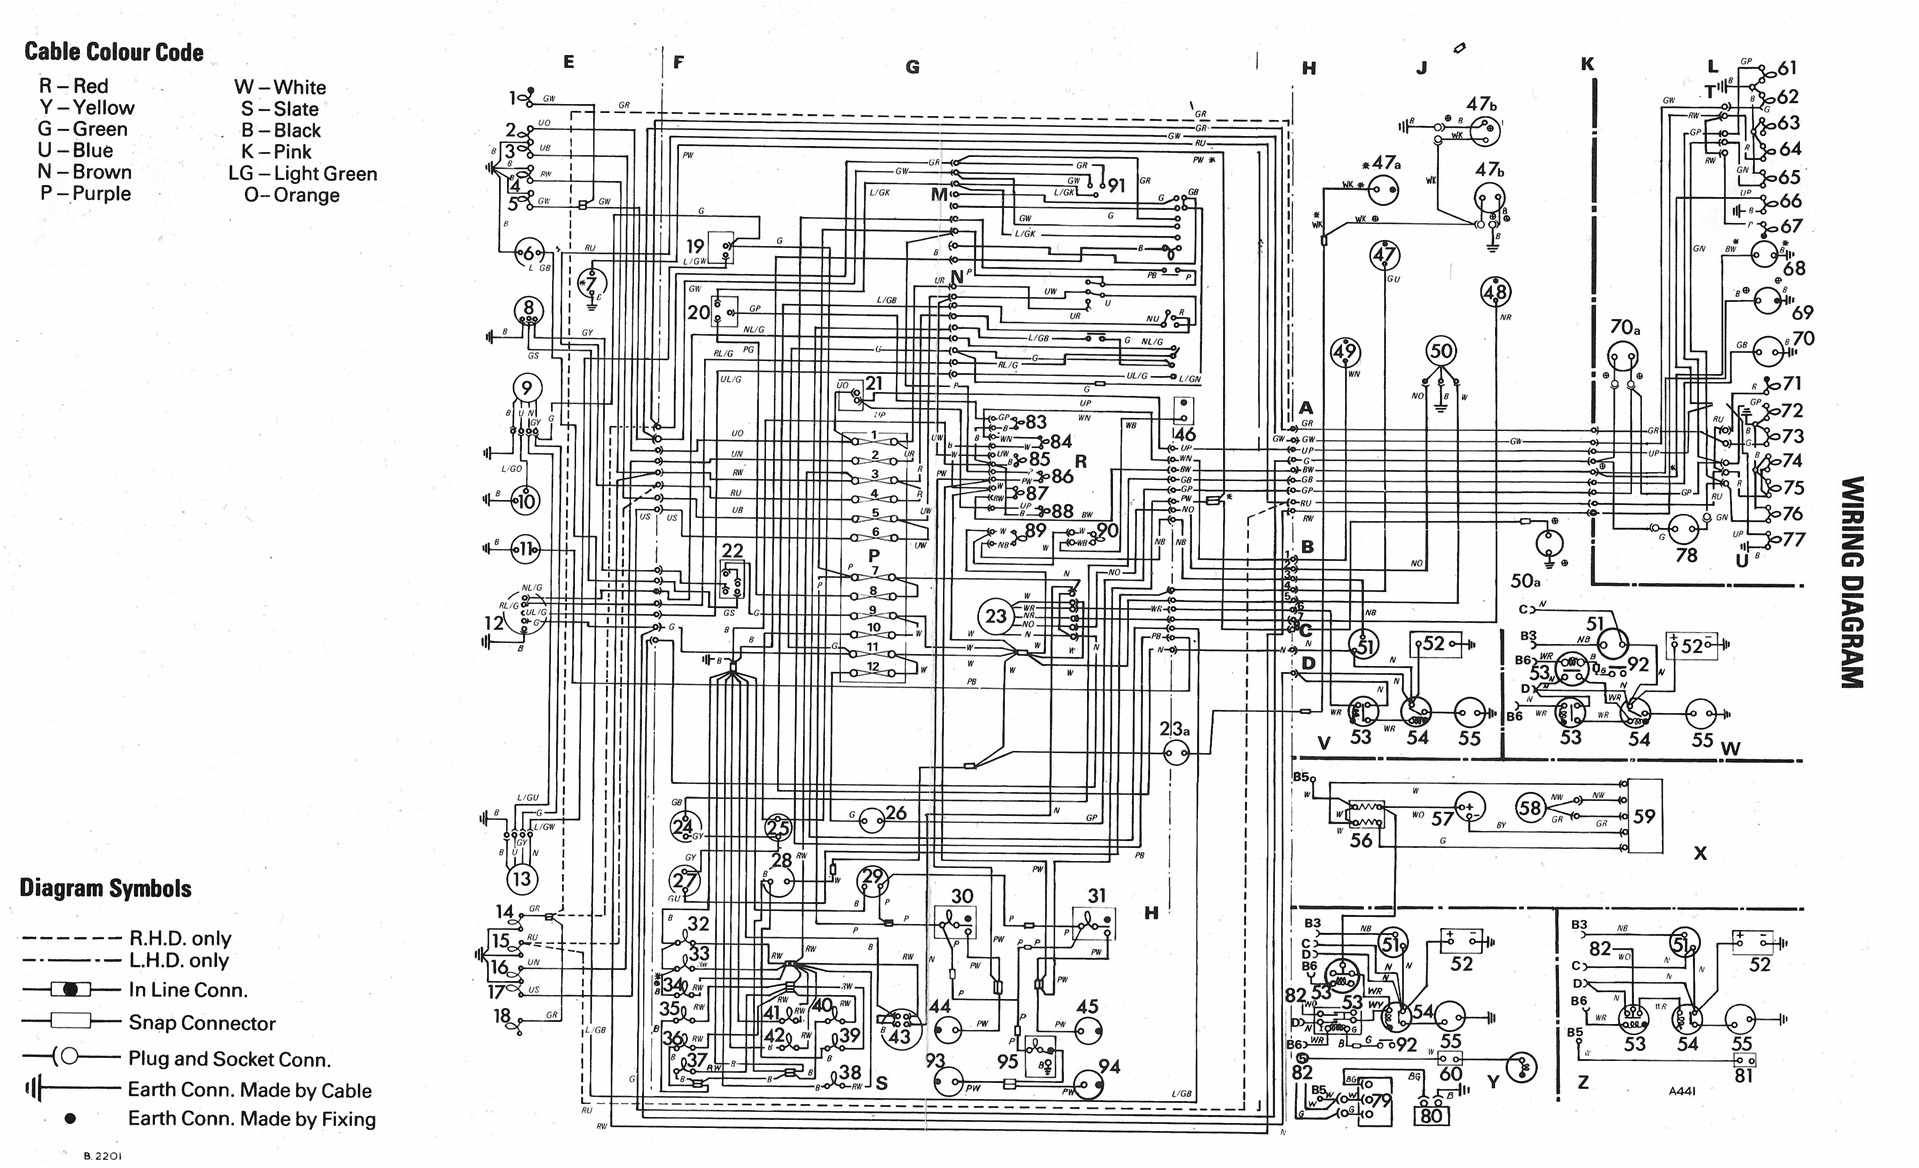 Volkswagen Electrical Wiring Diagrams | Wiring Schematic ... on